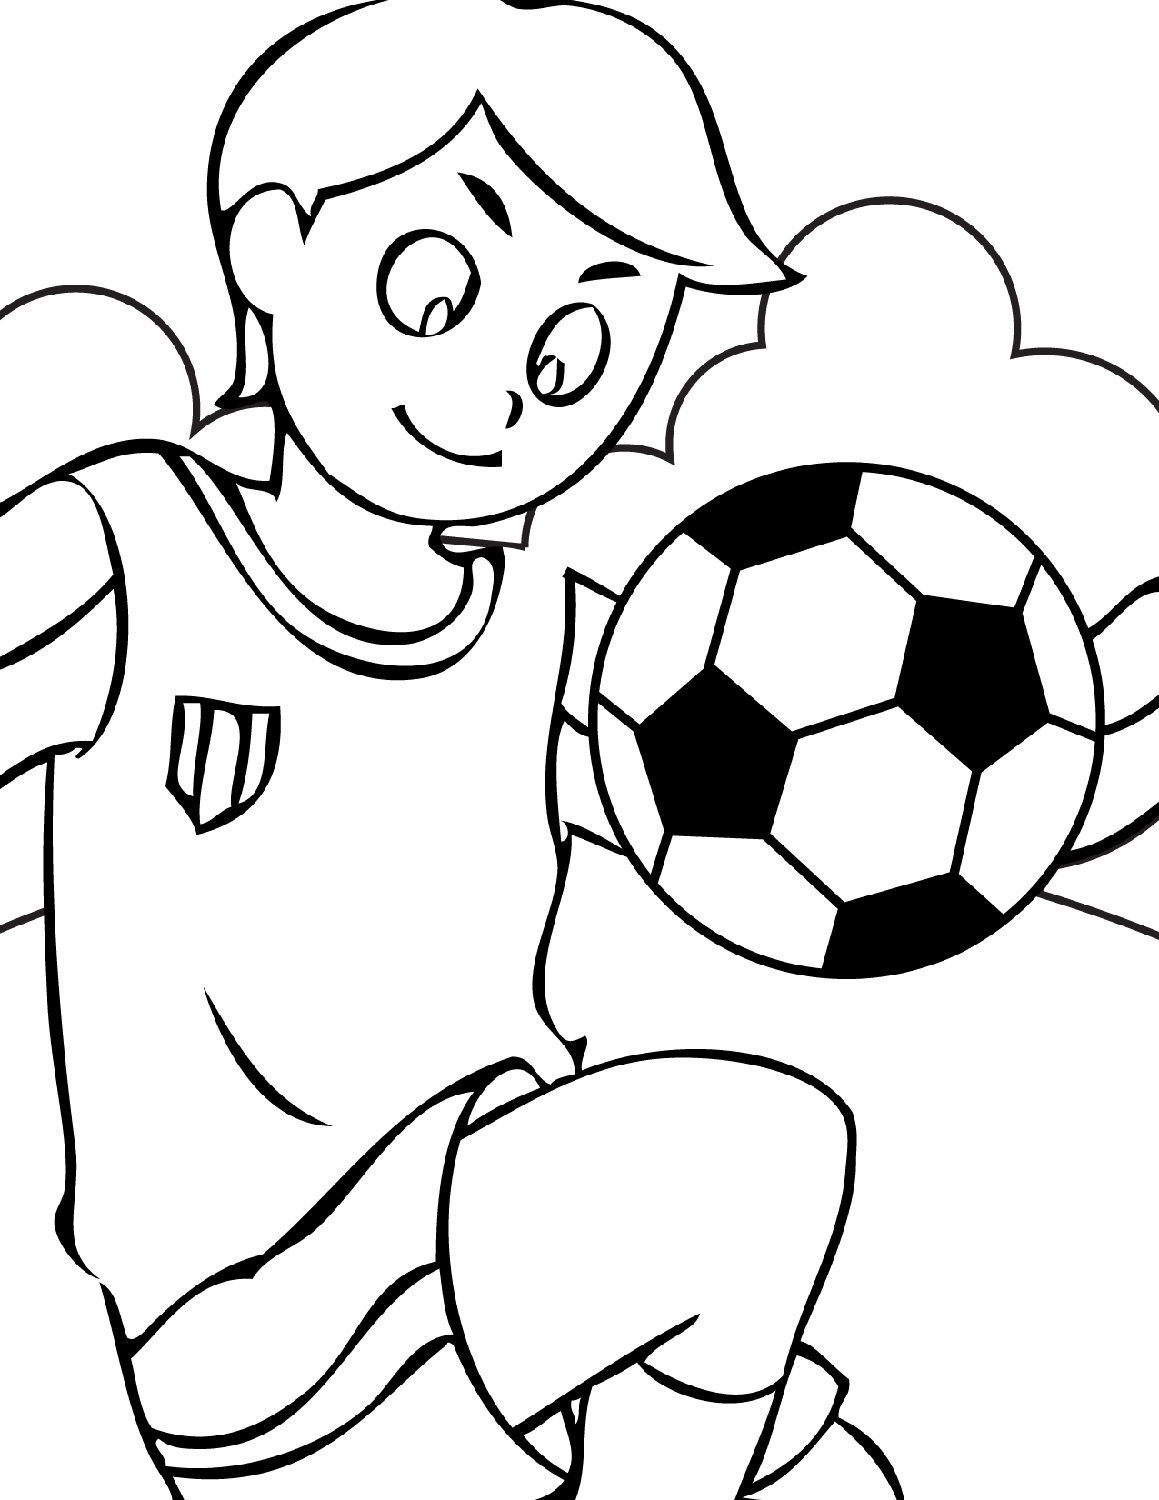 Soccer Worksheets For Kids Free